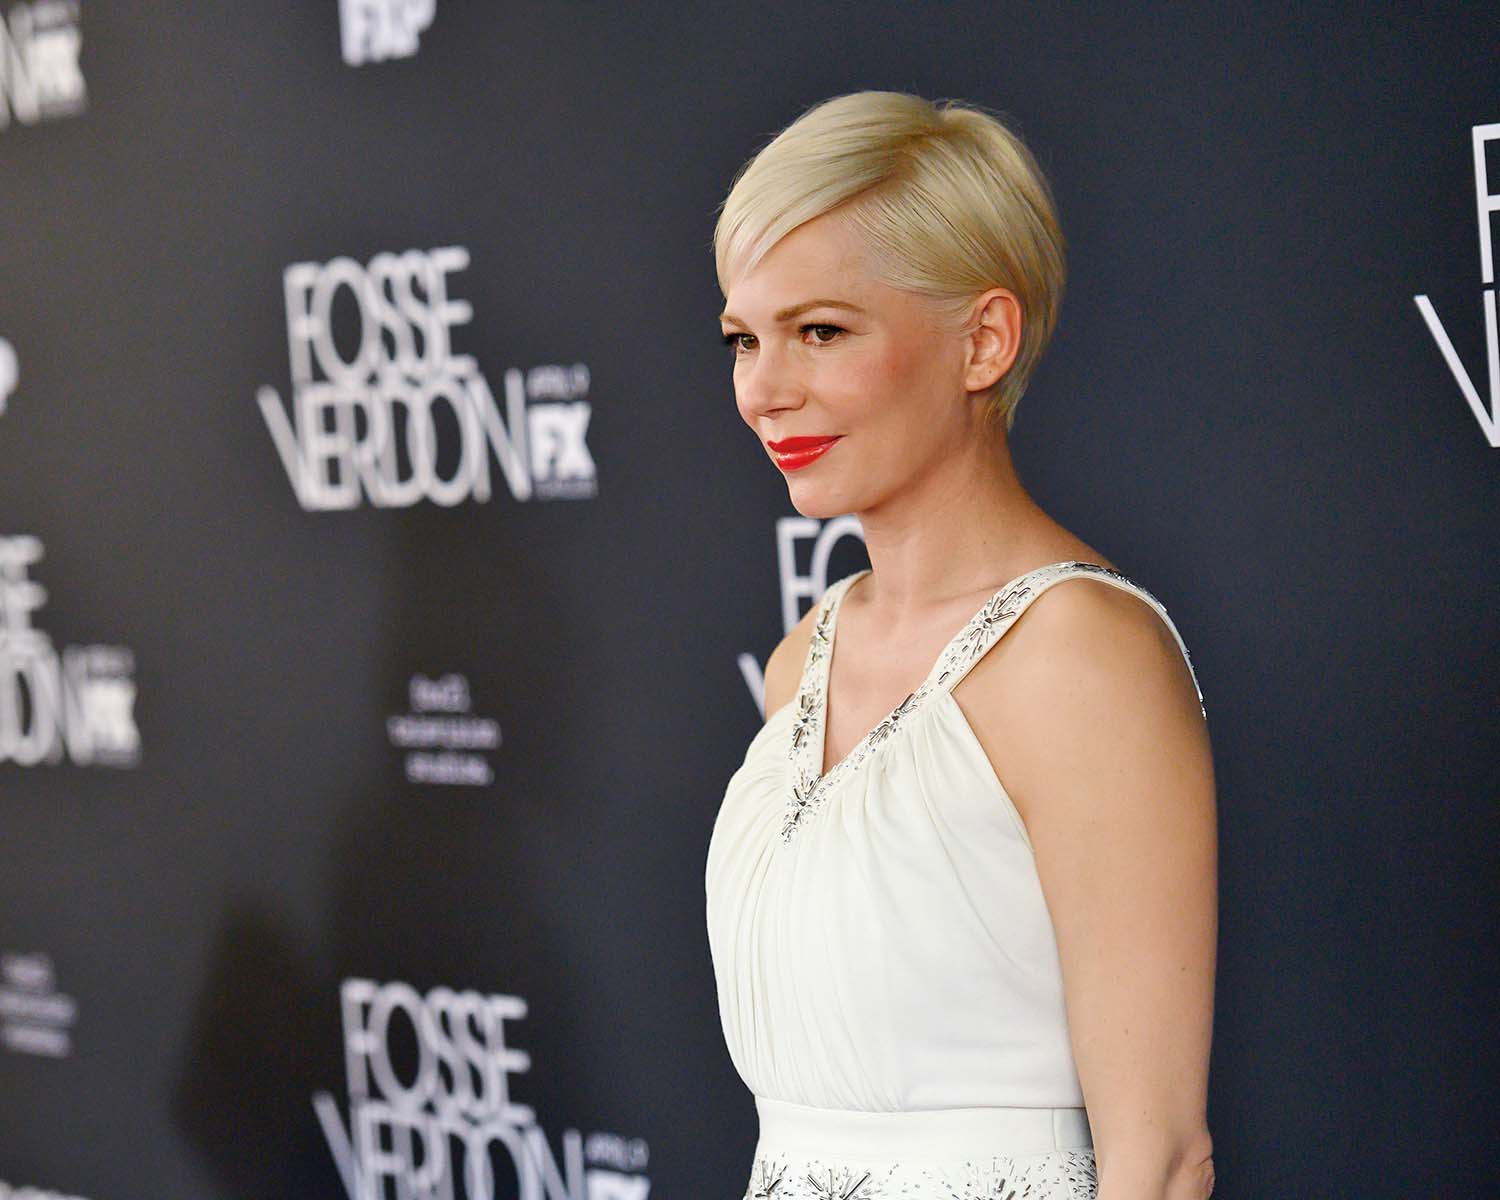 NEW YORK, NEW YORK - APRIL 08: Michelle Williams attends the New York Premiere for FX's